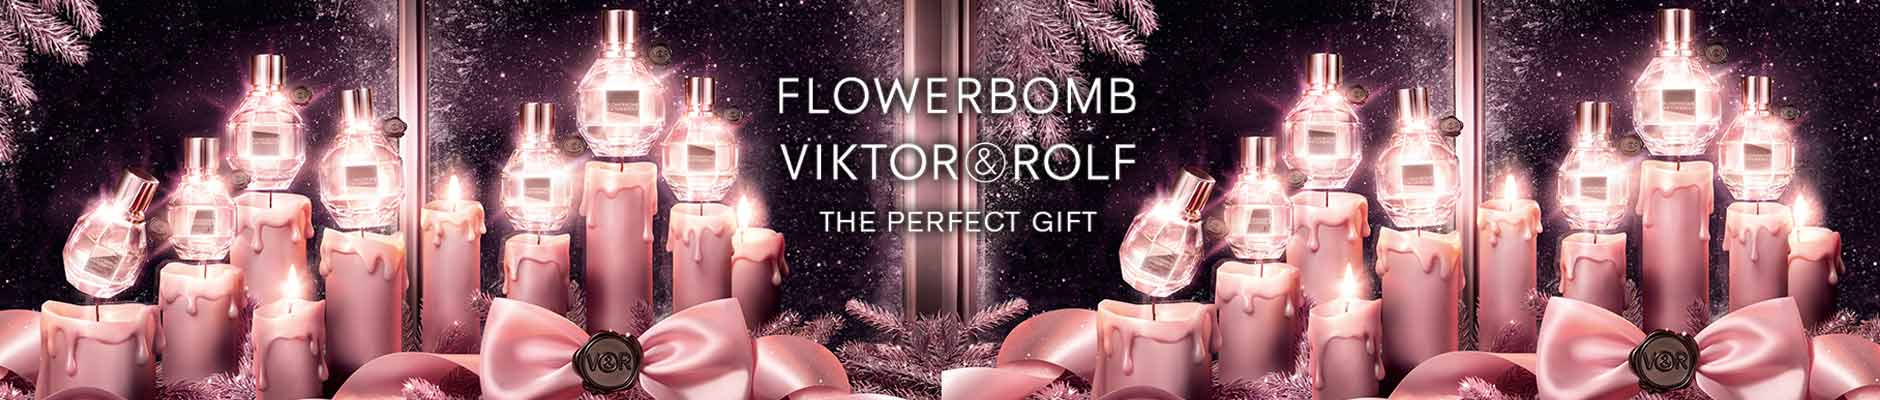 Flowerbomb Viktor & Rolf, the perfect gift